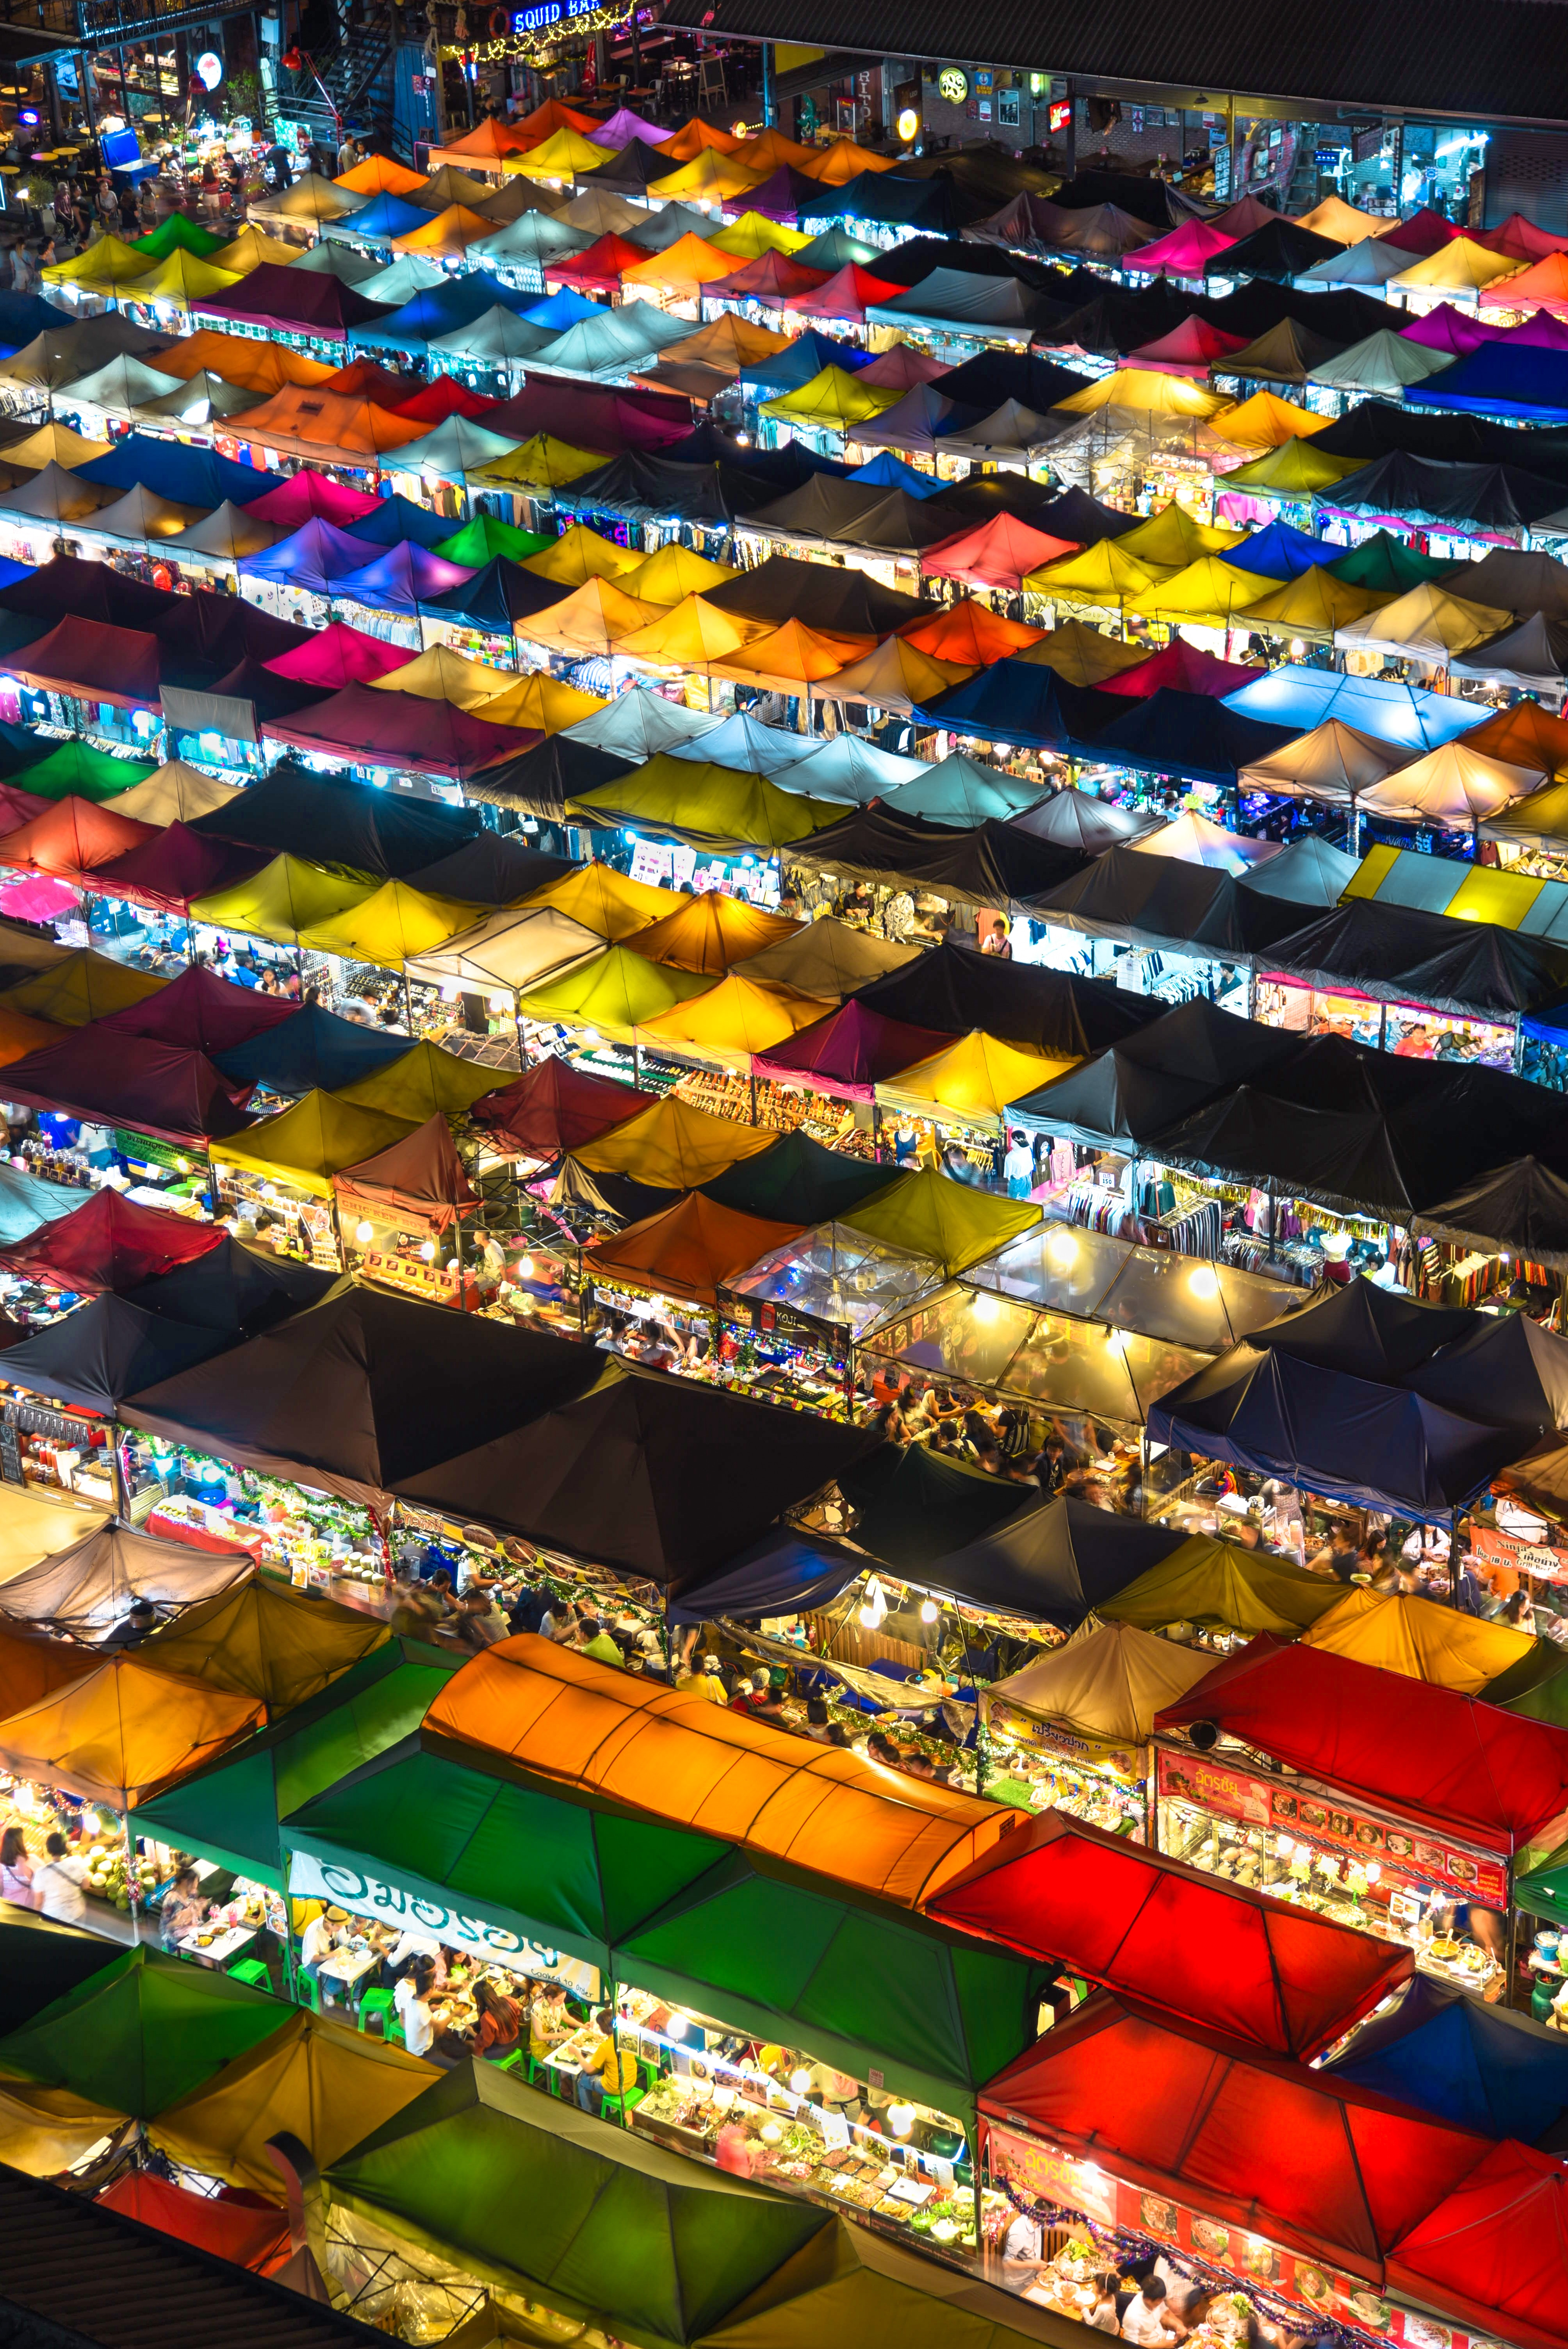 Remote Year Inspiring Places Photography Competition with Unsplash | Sam Beasley Market in Bangkok